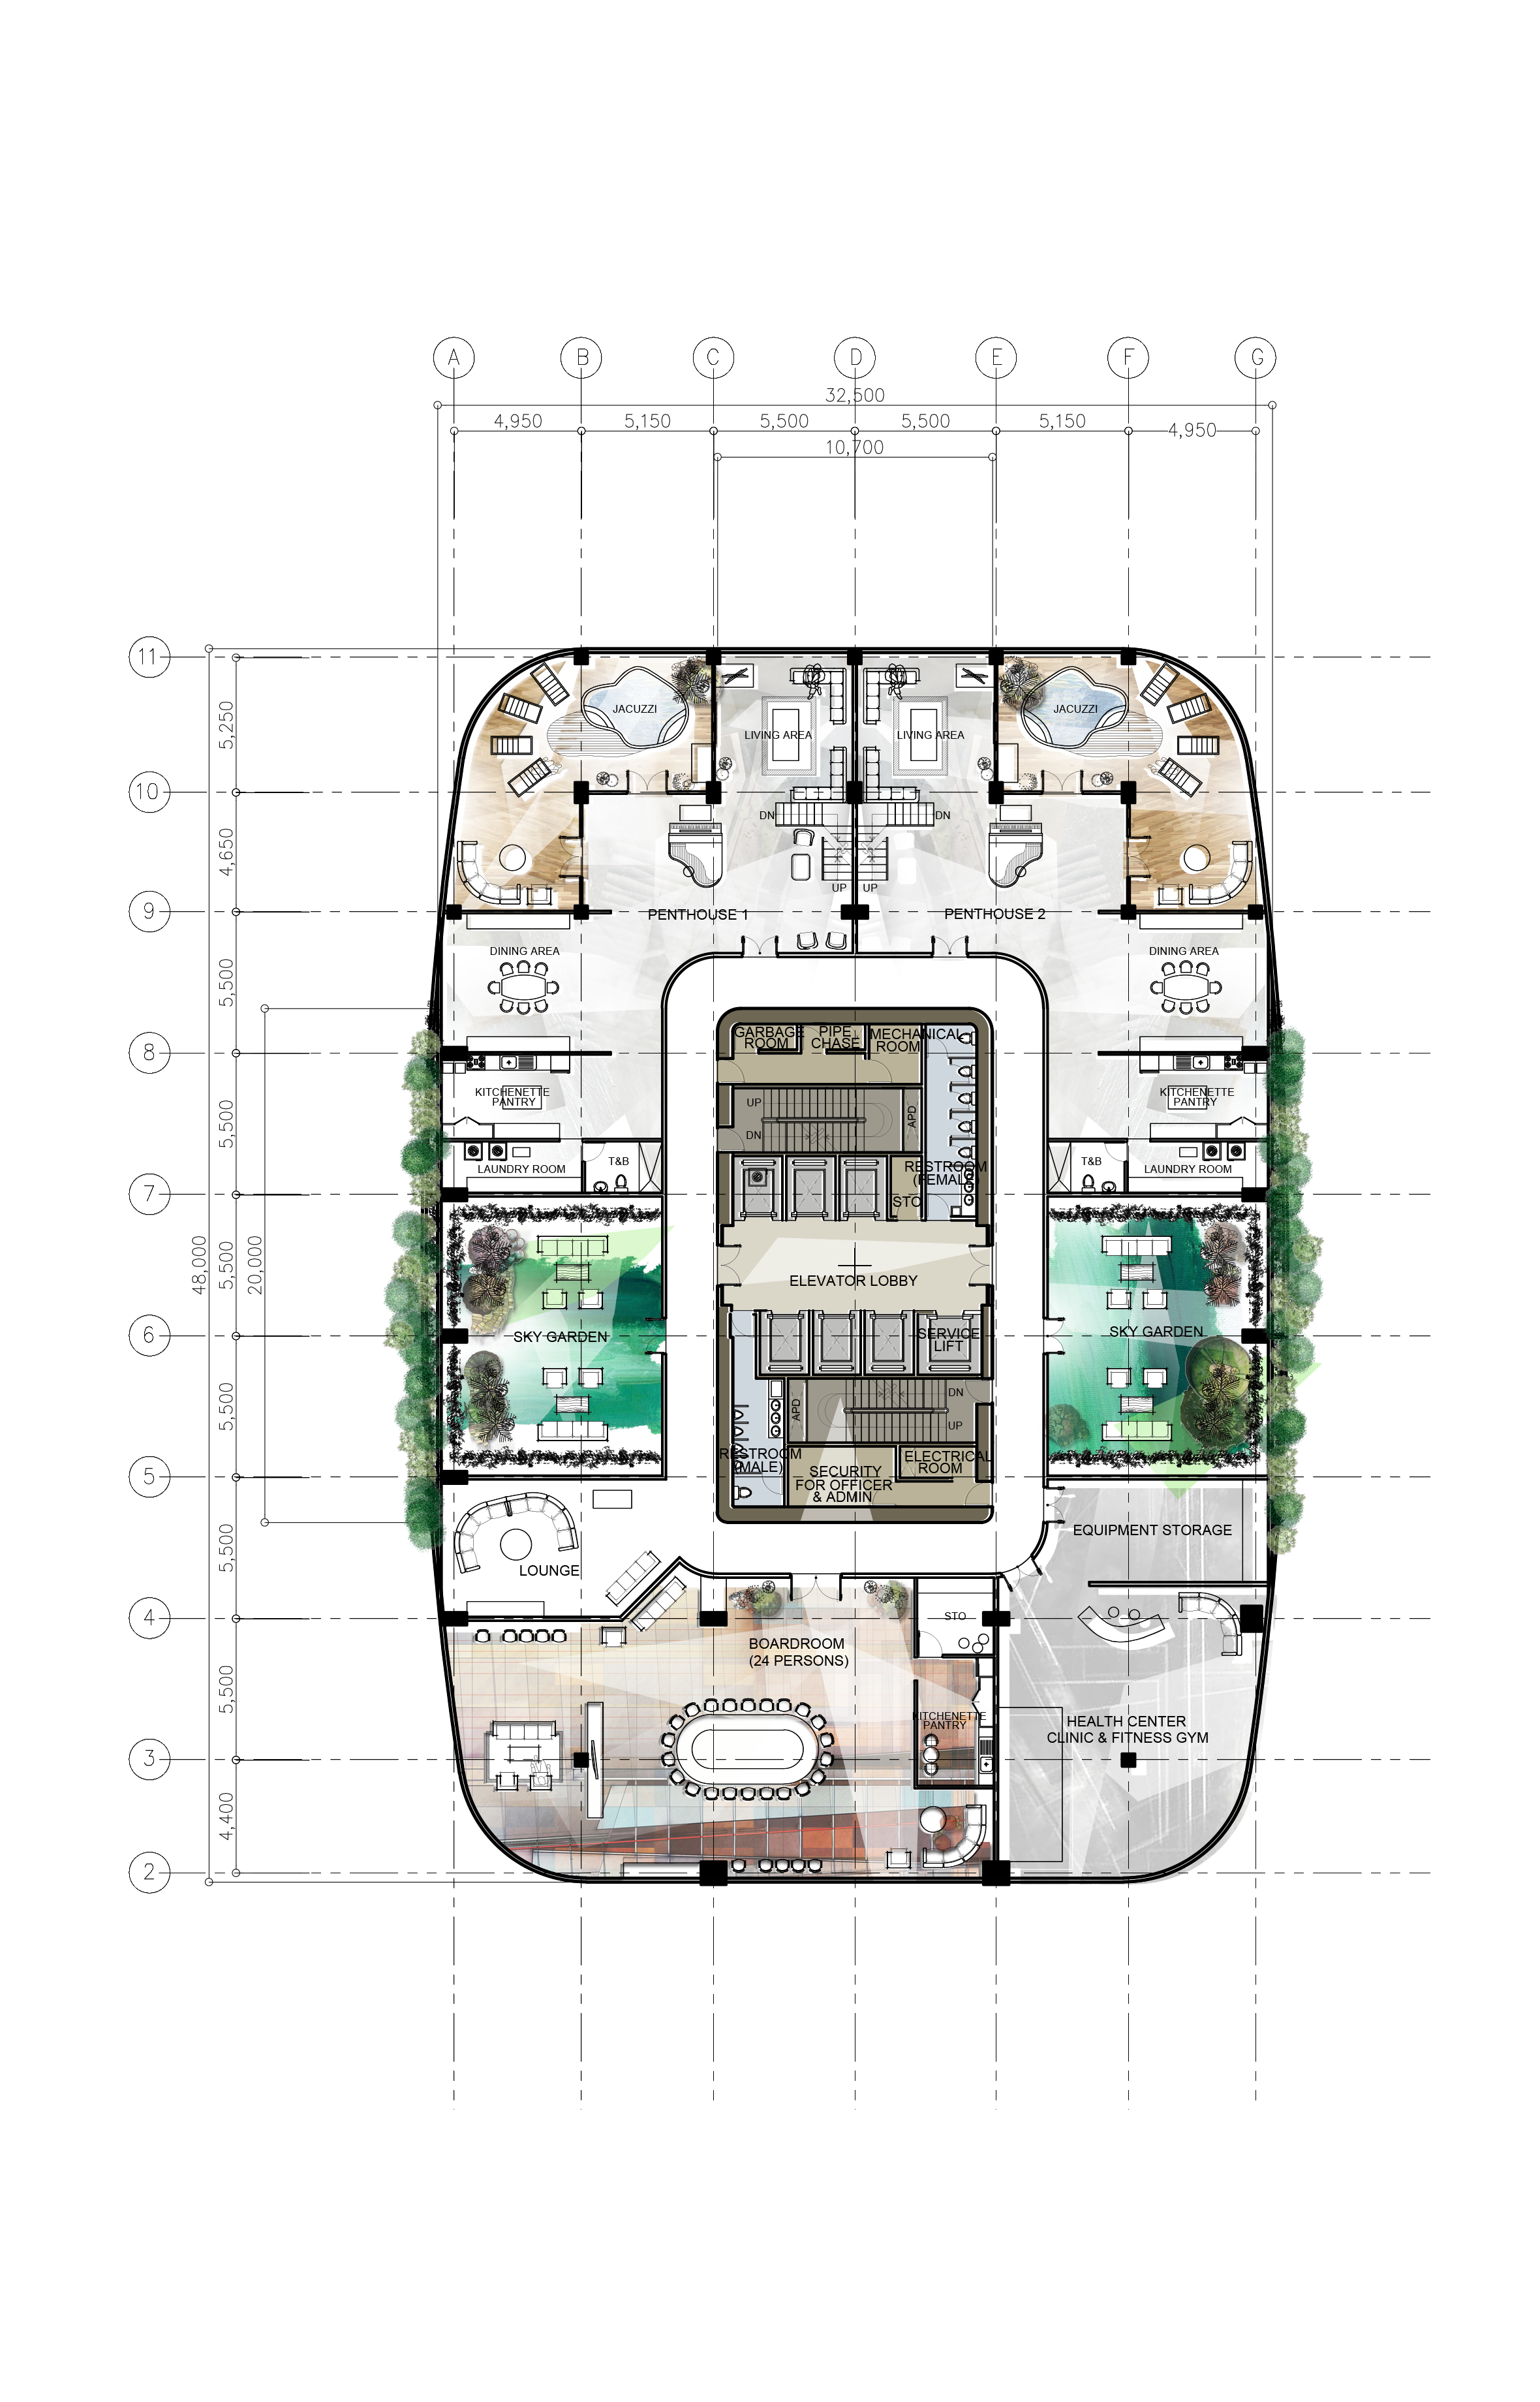 Architectural Penthouse Corporate Proposed Building Highrise Layouts Design Office Plates Office Building Plans Office Floor Plan Office Layout Plan